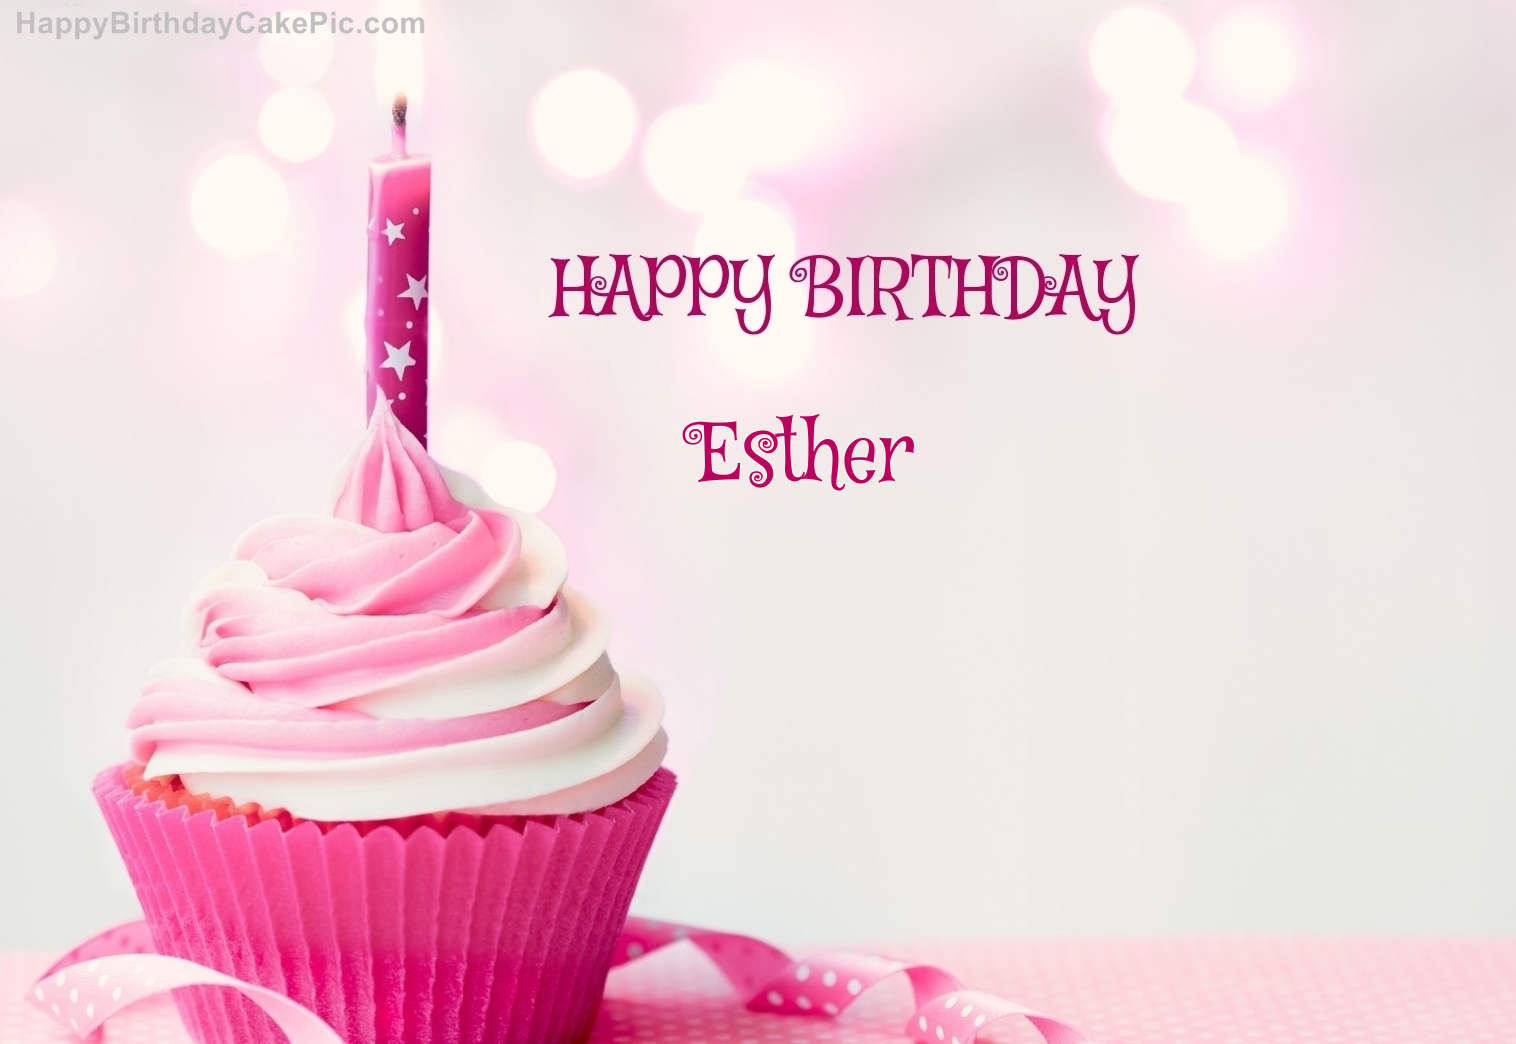 Happy Birthday Cupcake Candle Pink Cake For Esther